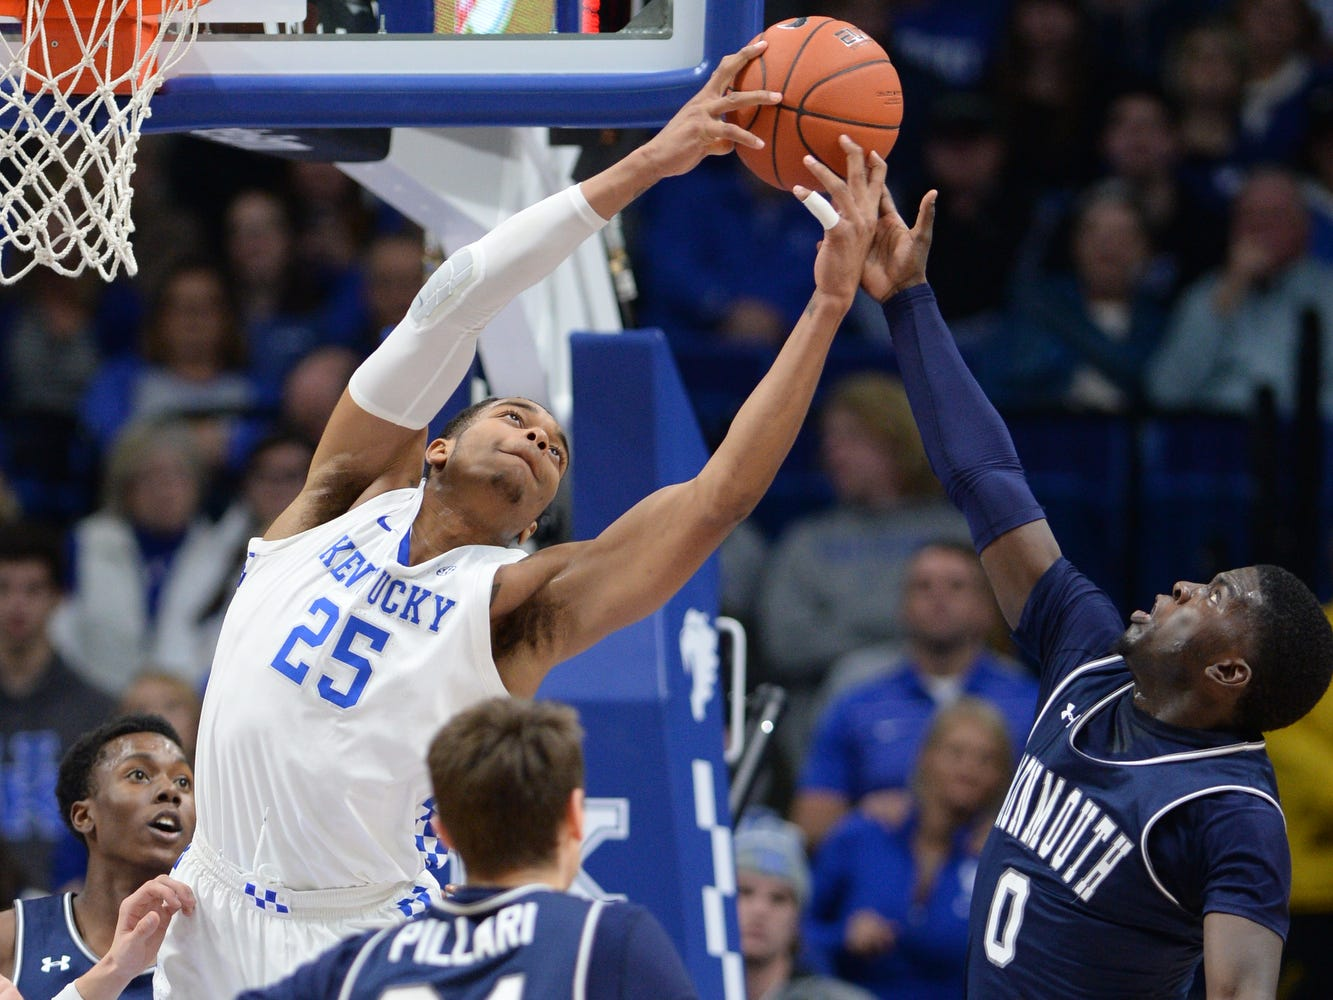 UK F PJ Washington grabs a rebound during the University of Kentucky mens basketball game against Monmouth at Rupp Arena in Lexington, Kentucky on Wednesday, November 28, 2018.